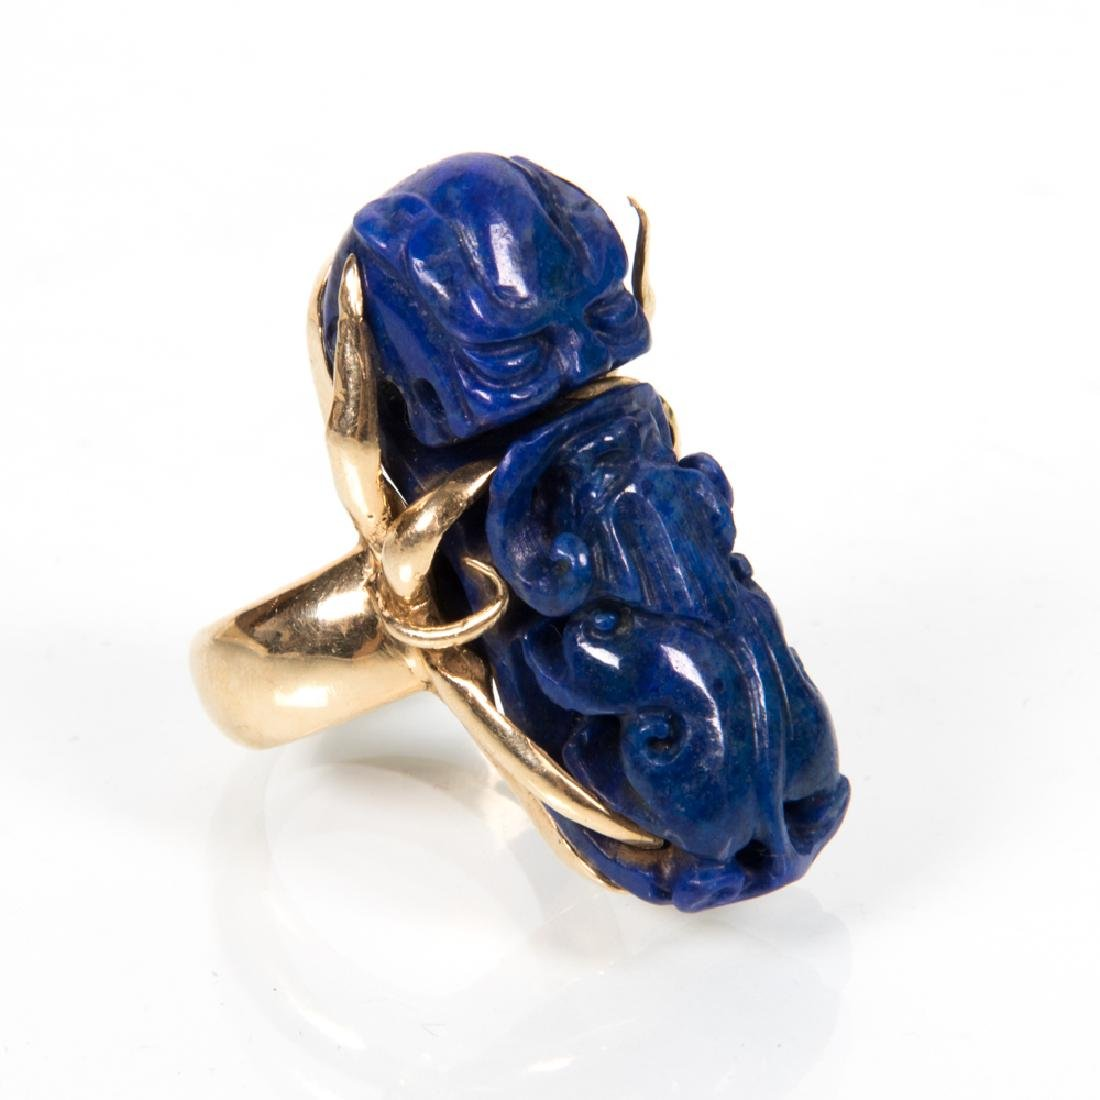 A 14kt. Yellow Gold and Pierced Carved Lapis Ring,